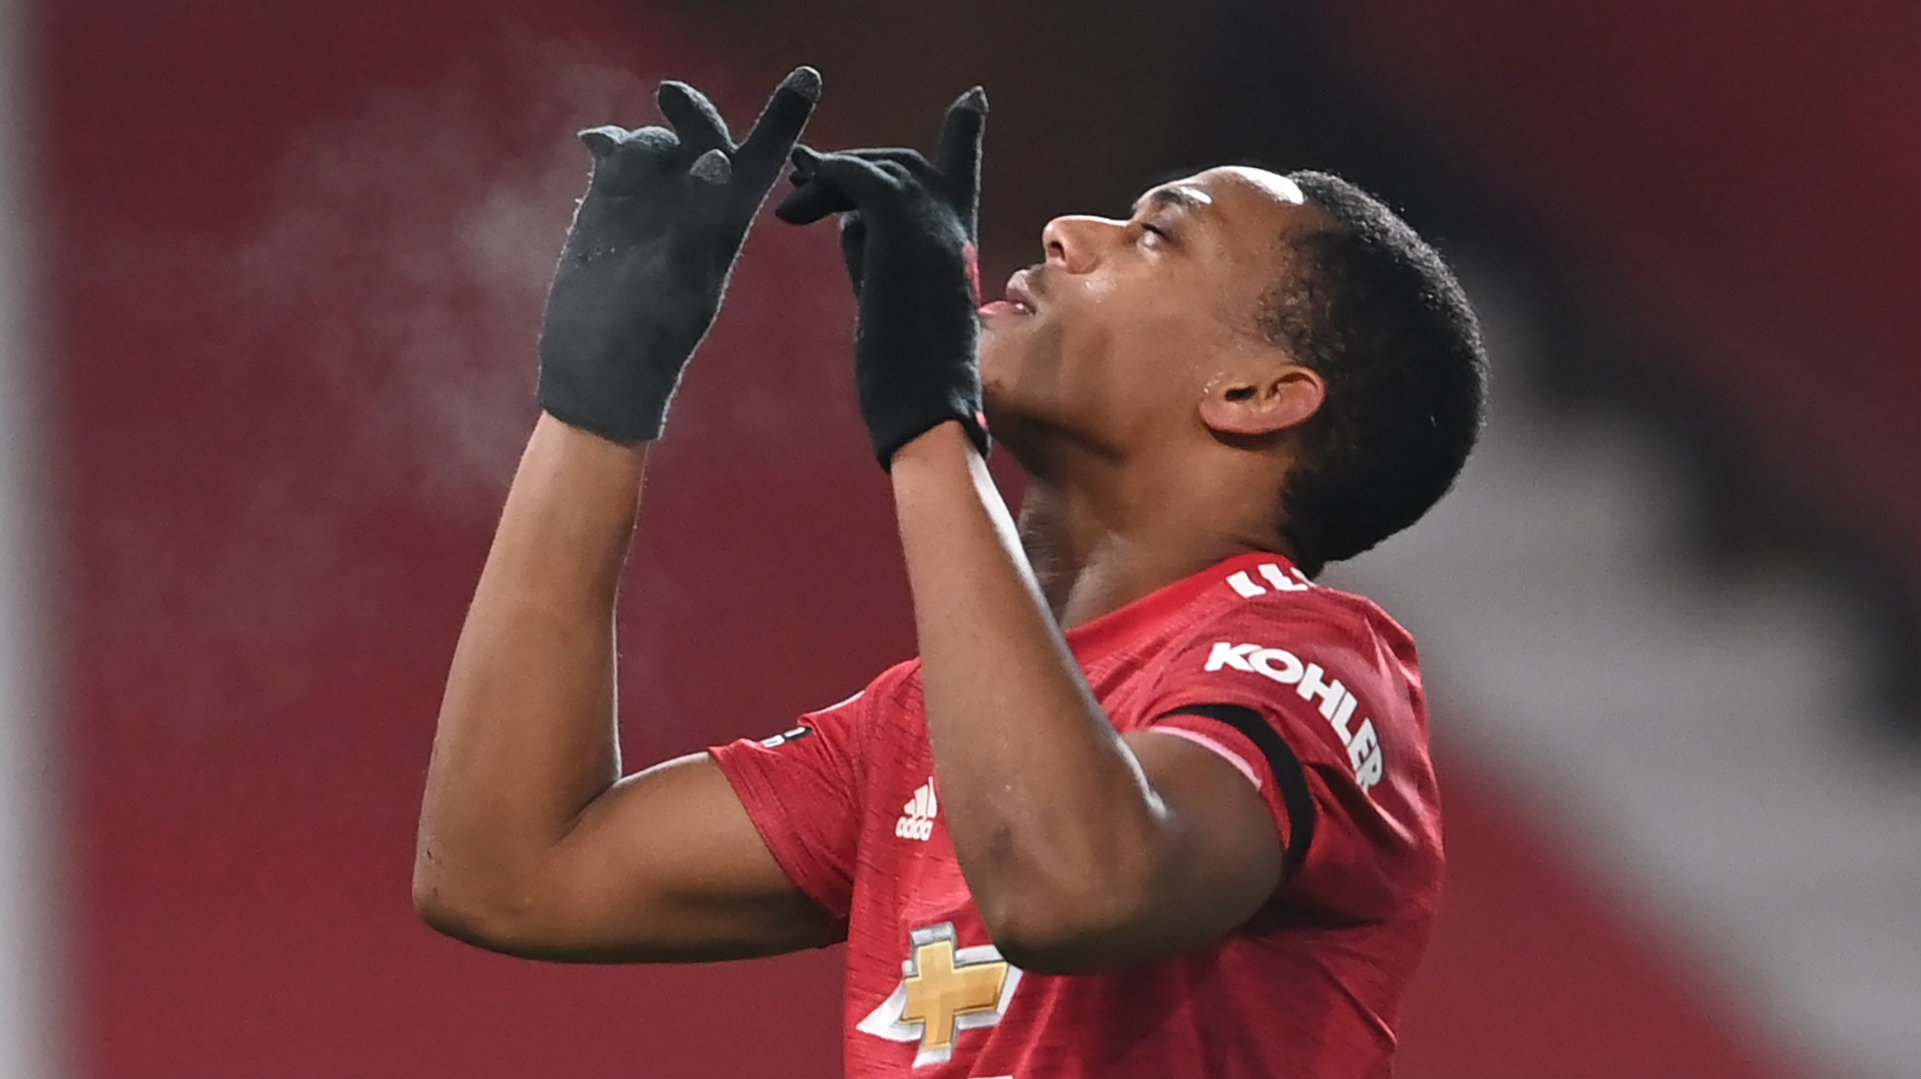 'Martial is nowhere near his full potential' - Cole urges misfiring Manchester United star to keep 'persevering'